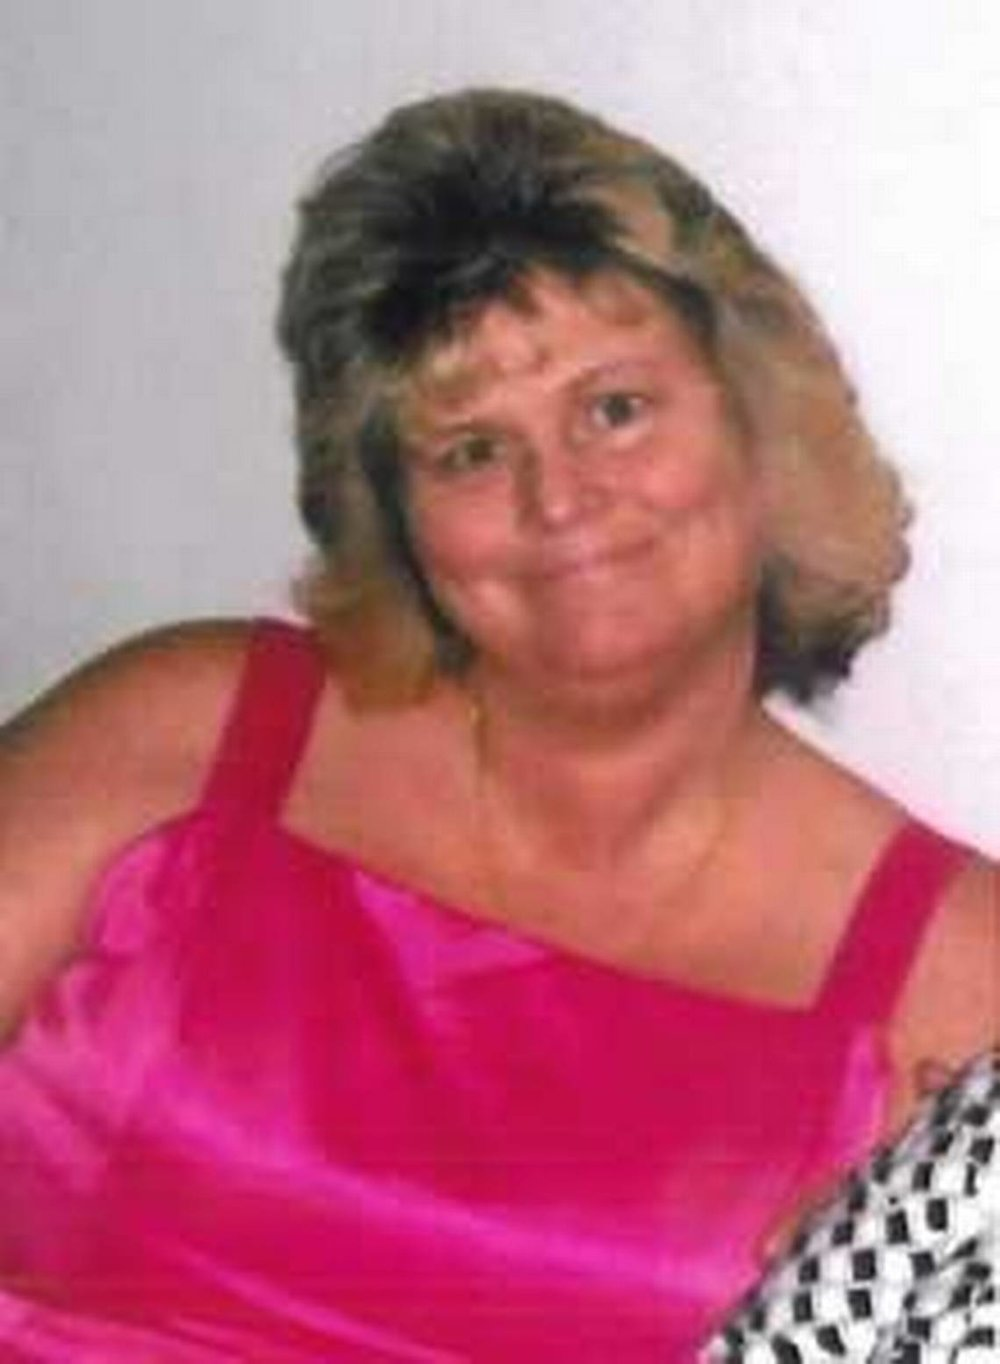 """BONNIE WOODWARD - bonnie woodward6.25.2010 Bonnie Woodward of East Alton was last seen at her work in the parking lot with a man described as white and in his 40's. It was said he they were near her Chevy Avalanche Pickup at the Eunice Smith Nursing home where she worked for 27 years. Her cell phone and social activity ceased from that moment. Fingerprints on her vehicle were later identified as Roger Carroll's. When he was questioned he stated that he was """"cutting brush"""" on his property that day.Roger Carroll's son Nathan confirmed that he used Heather as Bait to get Bonnie to get in the car with him. Roger said he knew where she was which is what made Bonnie leave her work and get in the vehicle with him voluntarily. Nathan, 16 at the time was subpoenaed and appeared in the Grand Jury to testify. Nathan said that early morning Roger made an unusual departure from Goreville. On the trip home Roger said Bonnie was a bad person and that he was gonna kill her…. (CONT…)"""